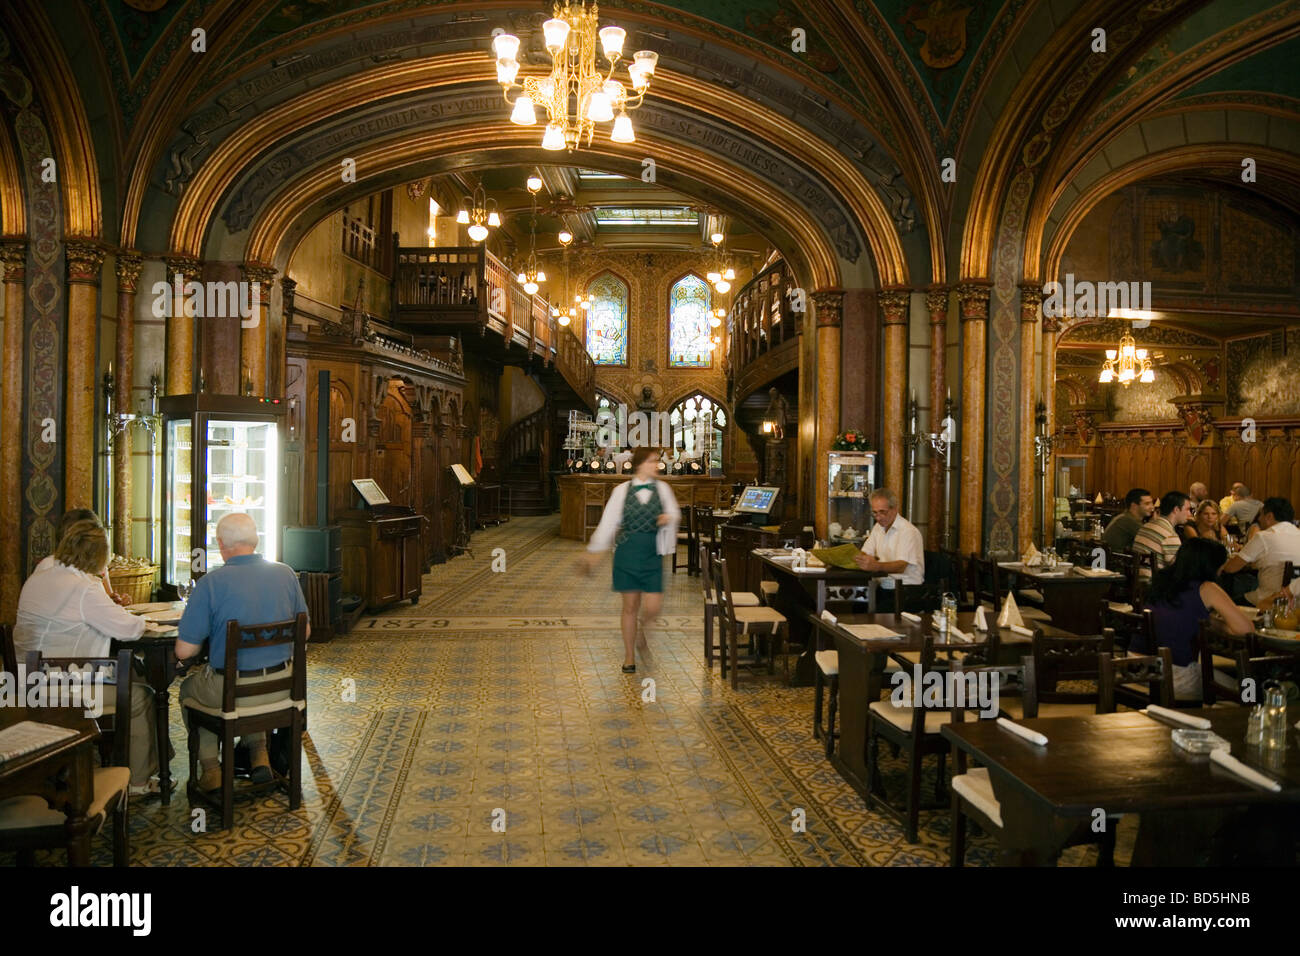 Caru cu Bere The Beer Cart Restaurant Bucharest - Stock Image